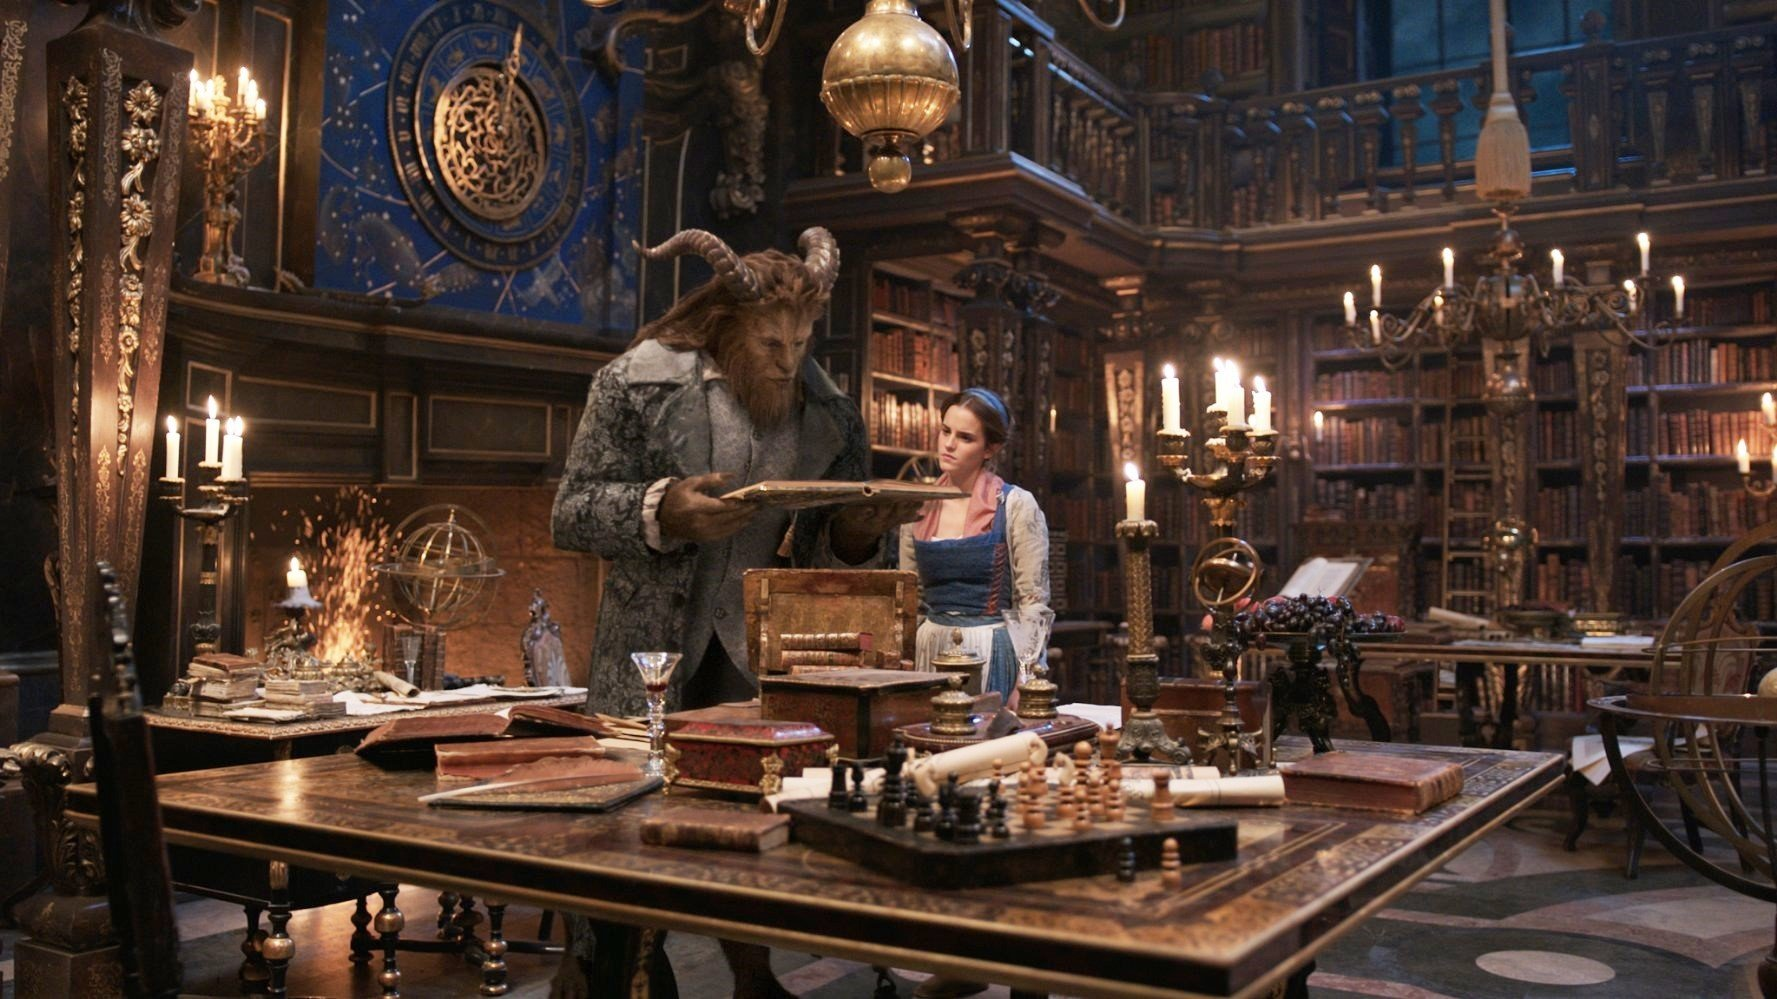 Dan Stevens stars as Beast and Emma Watson stars as Belle in Walt Disney Pictures' Beauty and the Beast (2017)